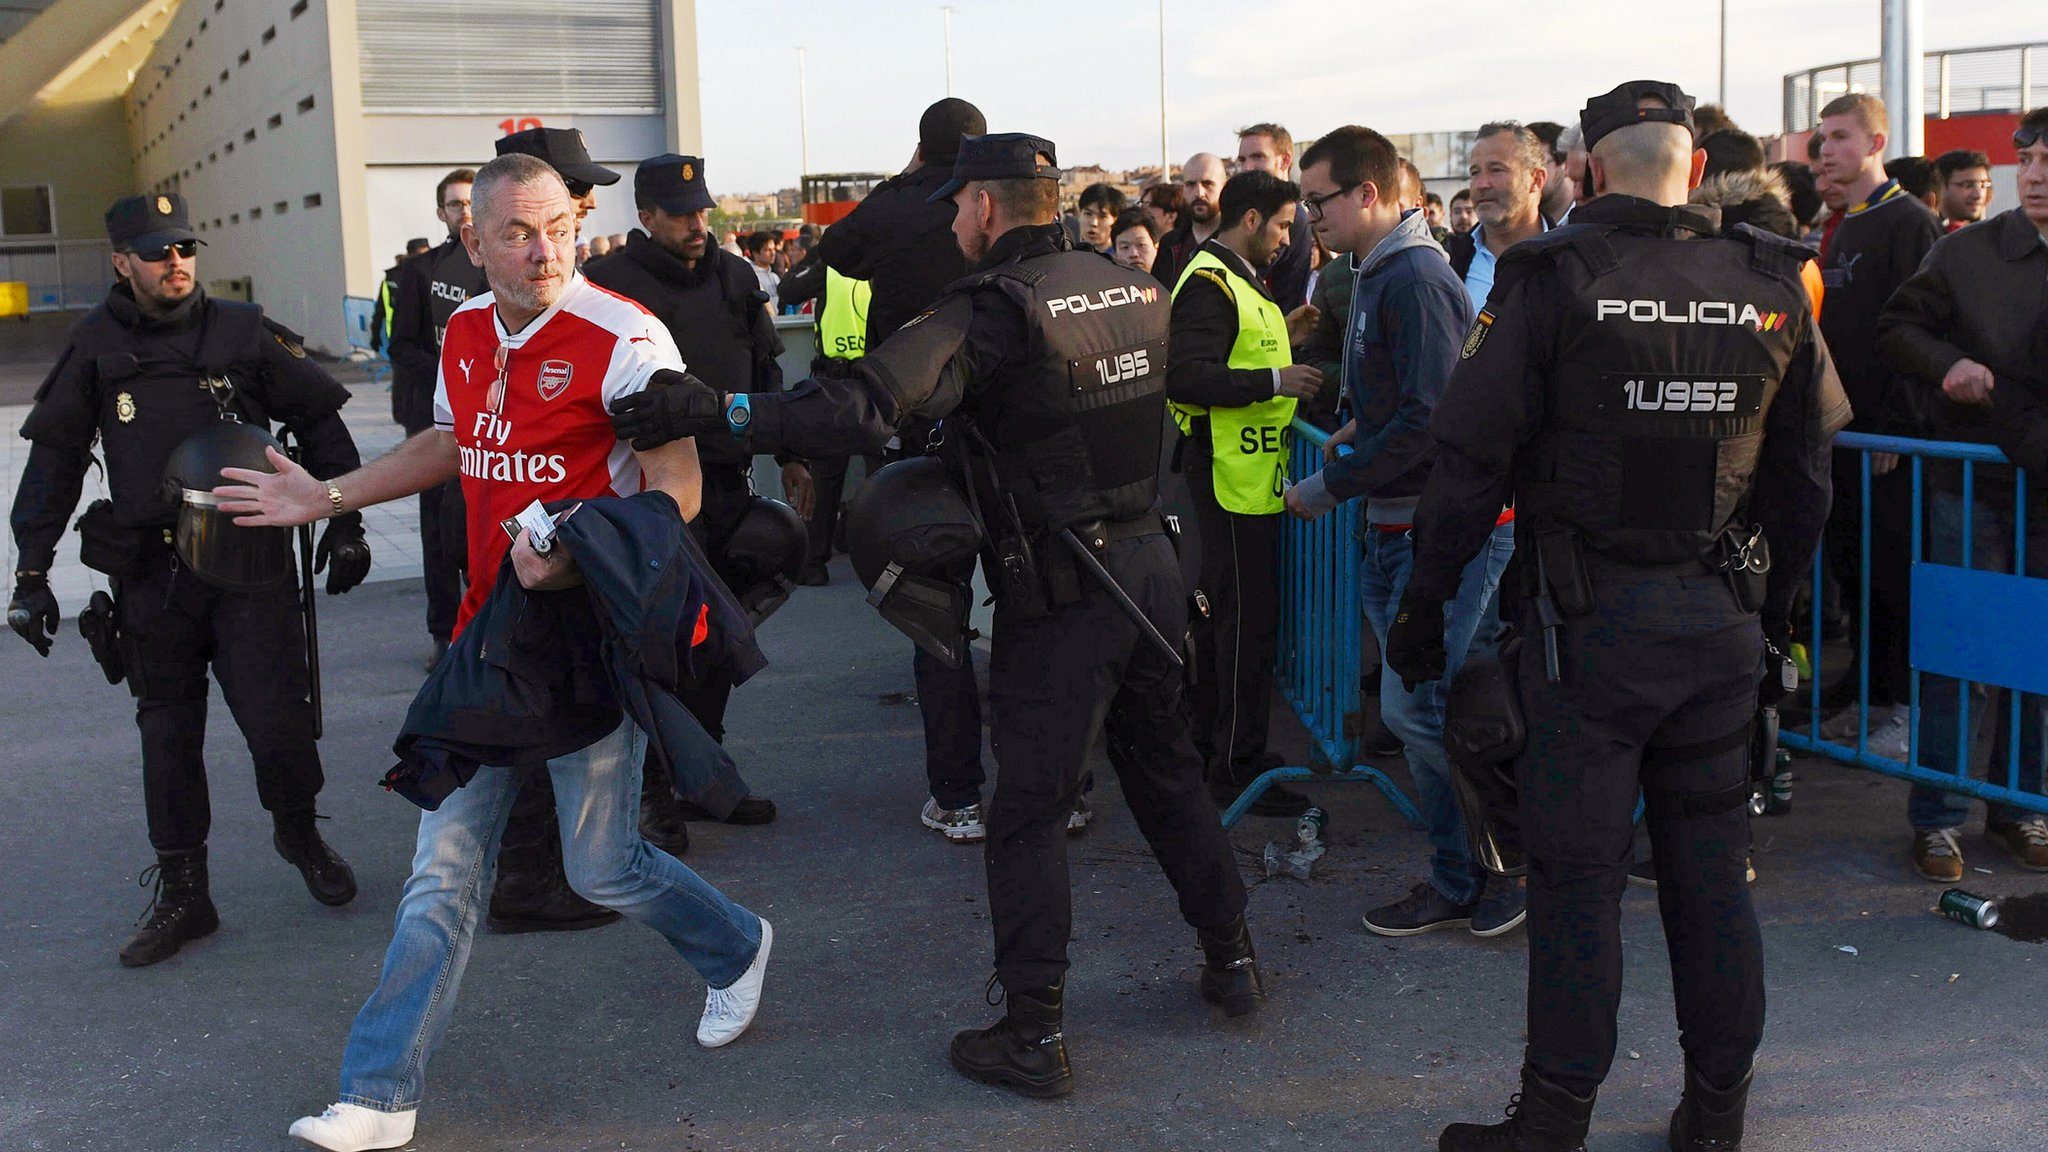 Arsenal fans want Spanish police investigated for 'inexcusable violence'